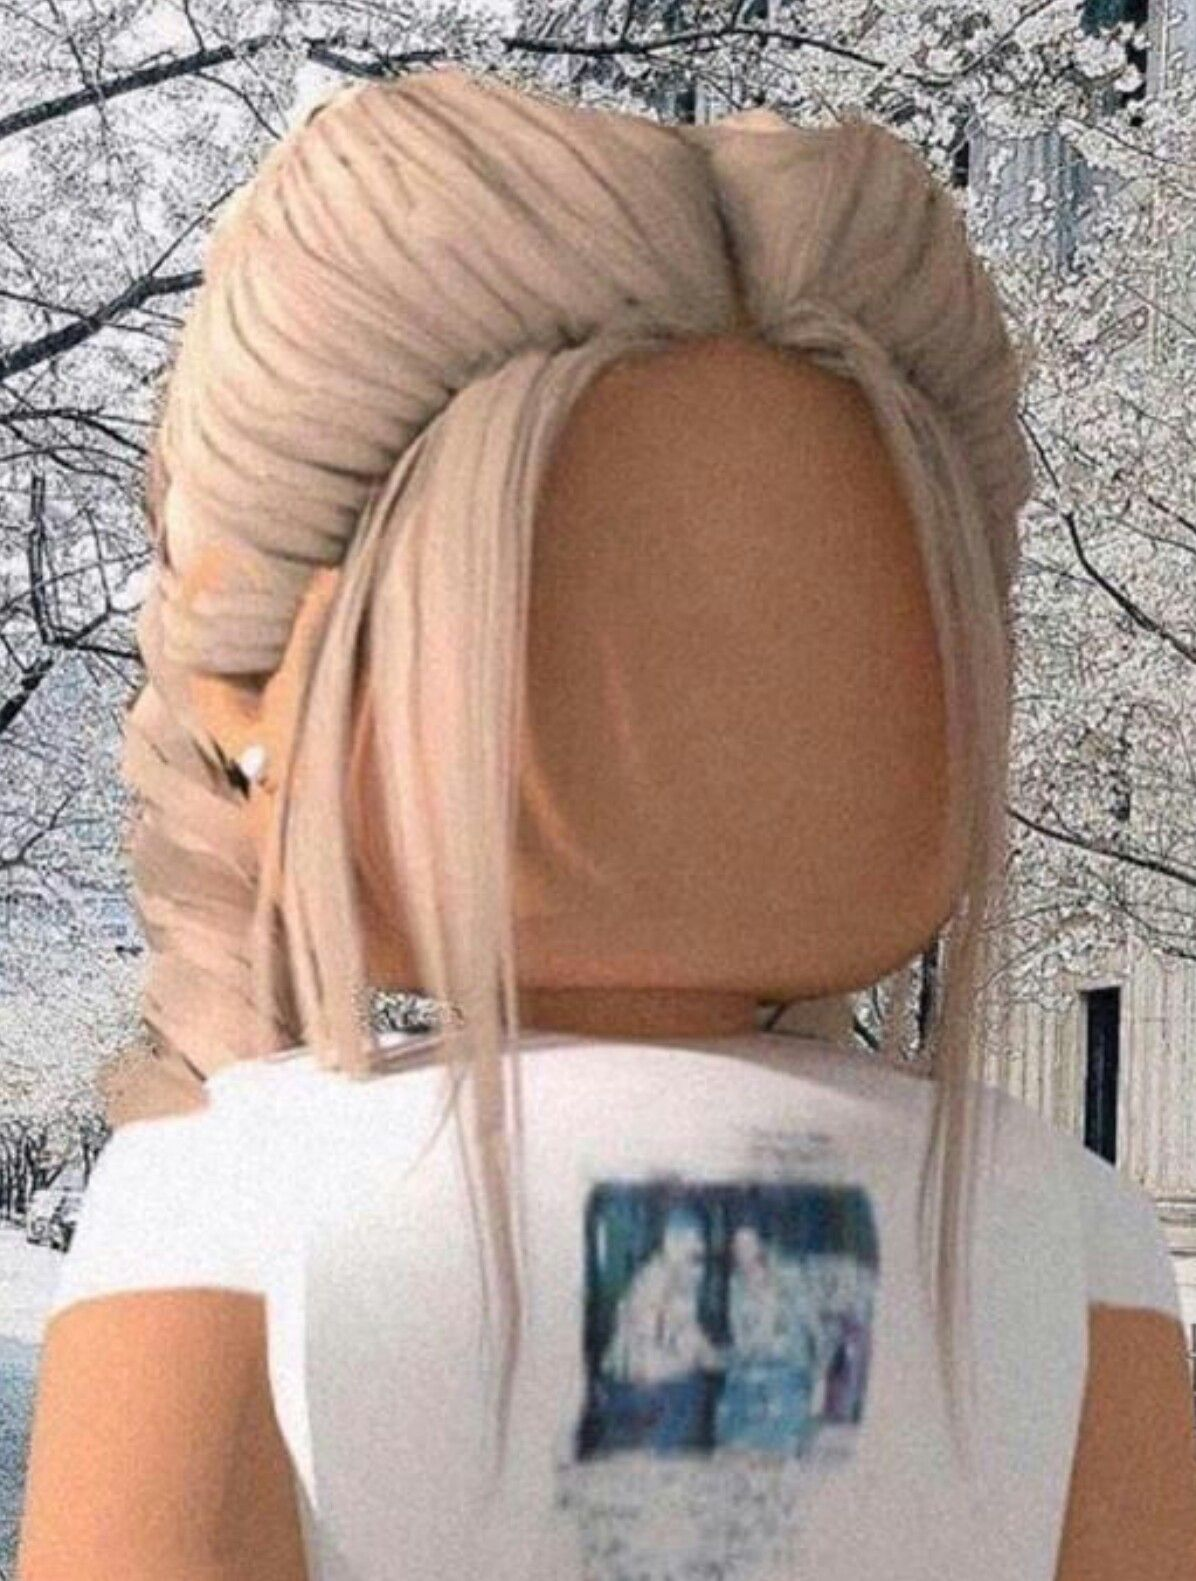 Wintery Blonde In 2020 Cute Tumblr Wallpaper Roblox Animation Cute Profile Pictures